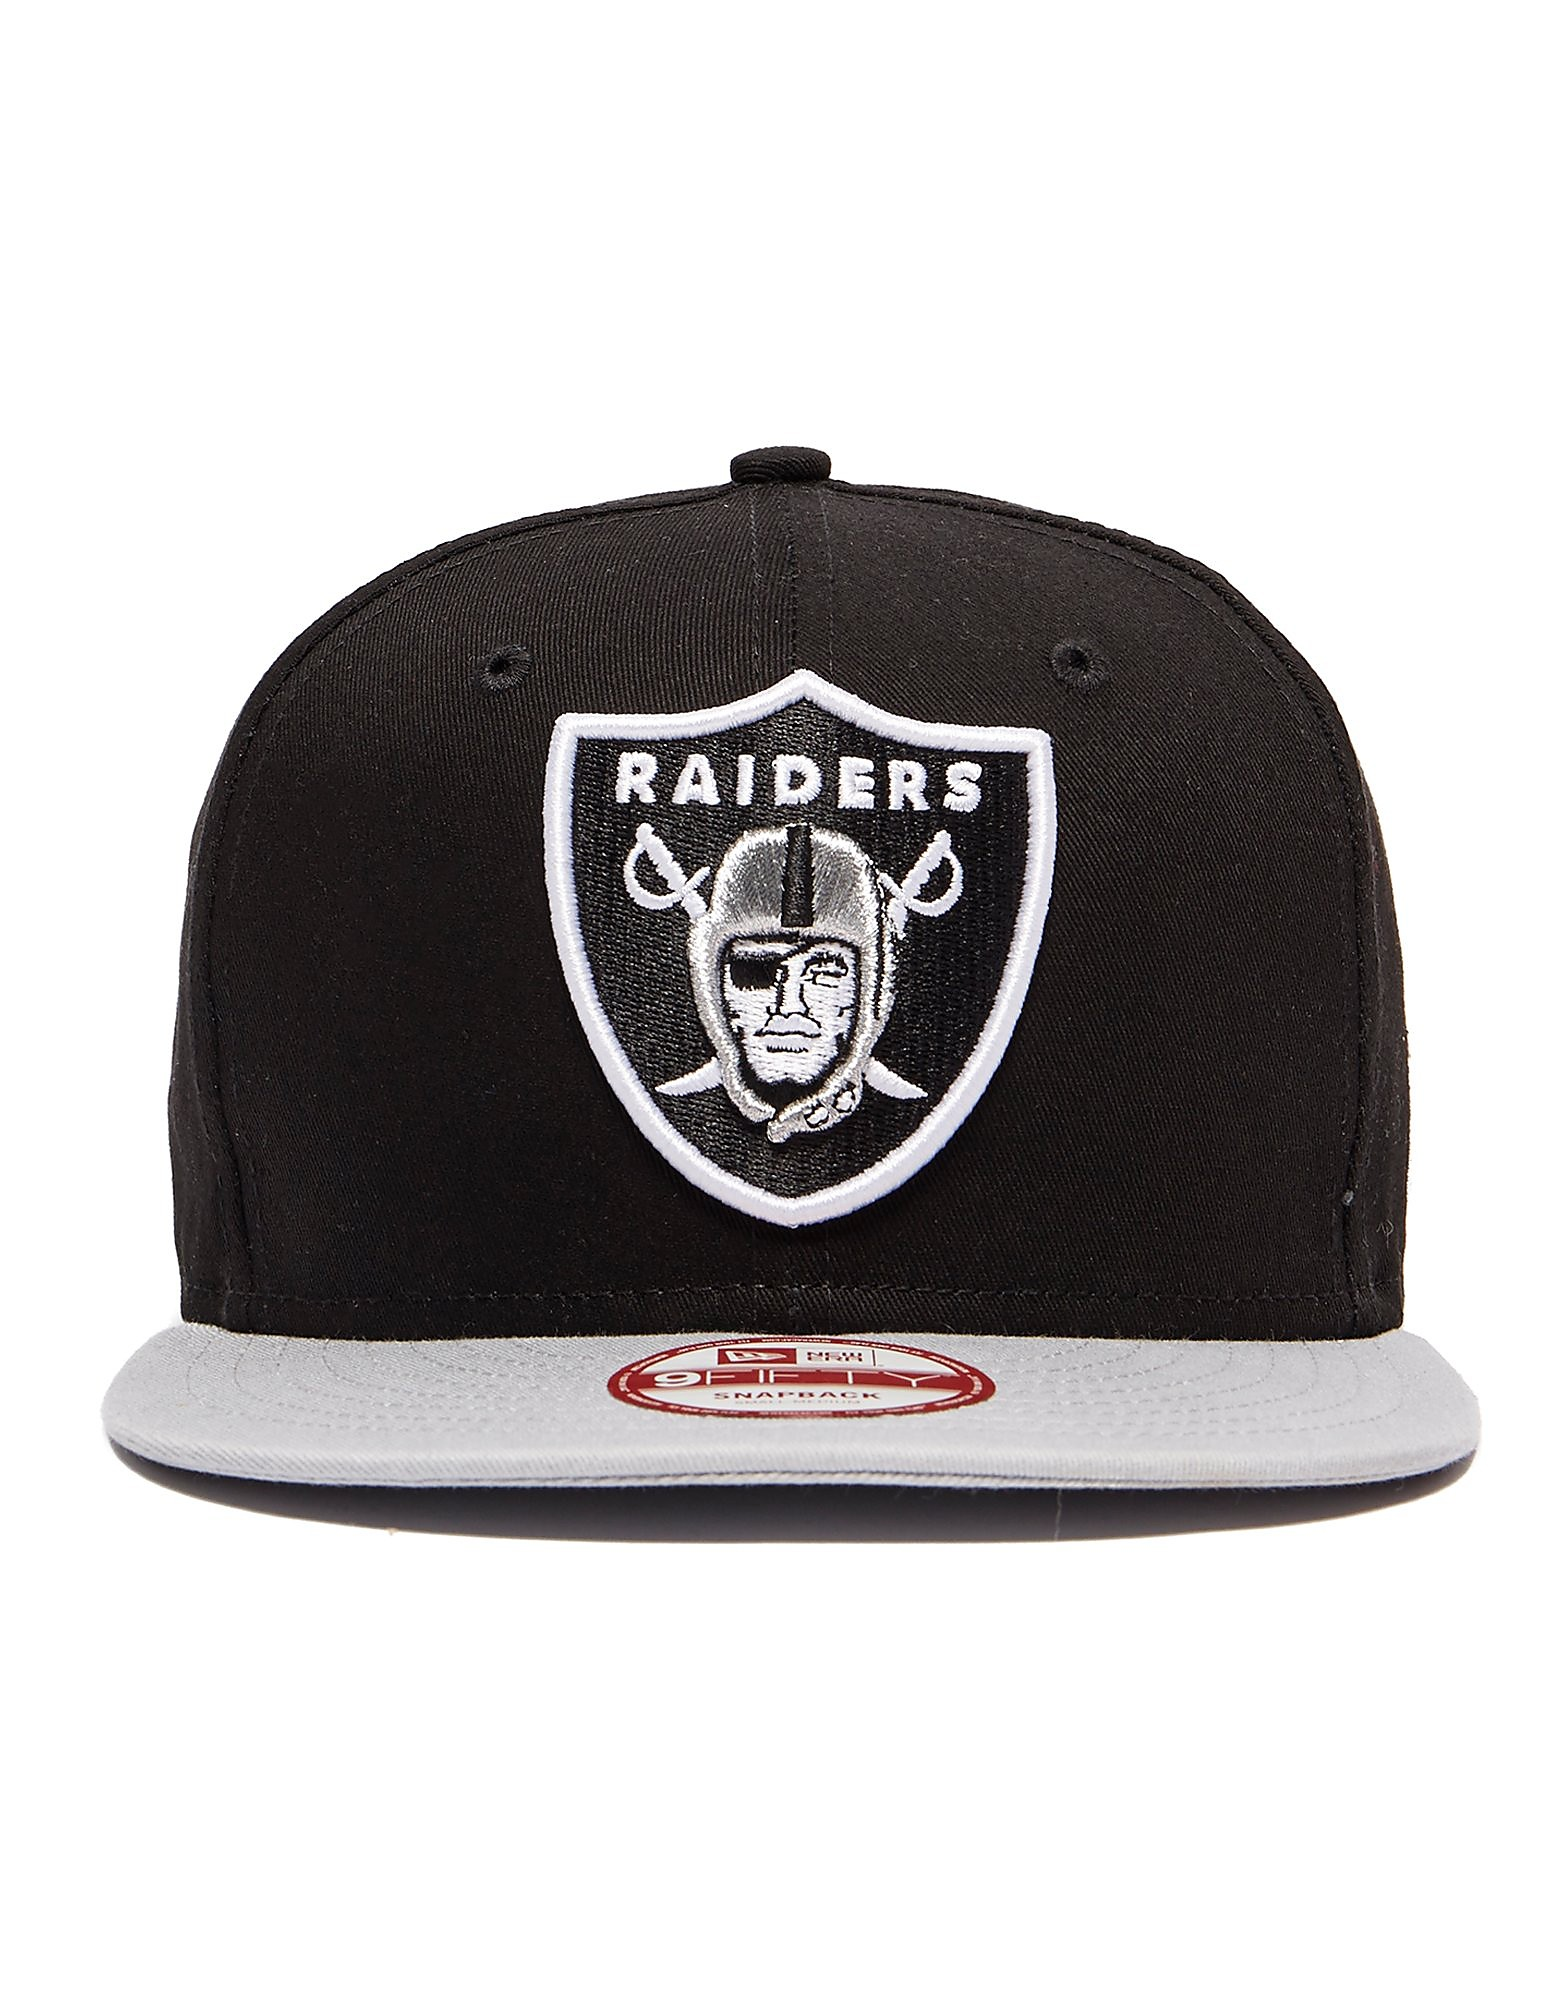 New Era Oakland Raiders 9FIFTY Cap